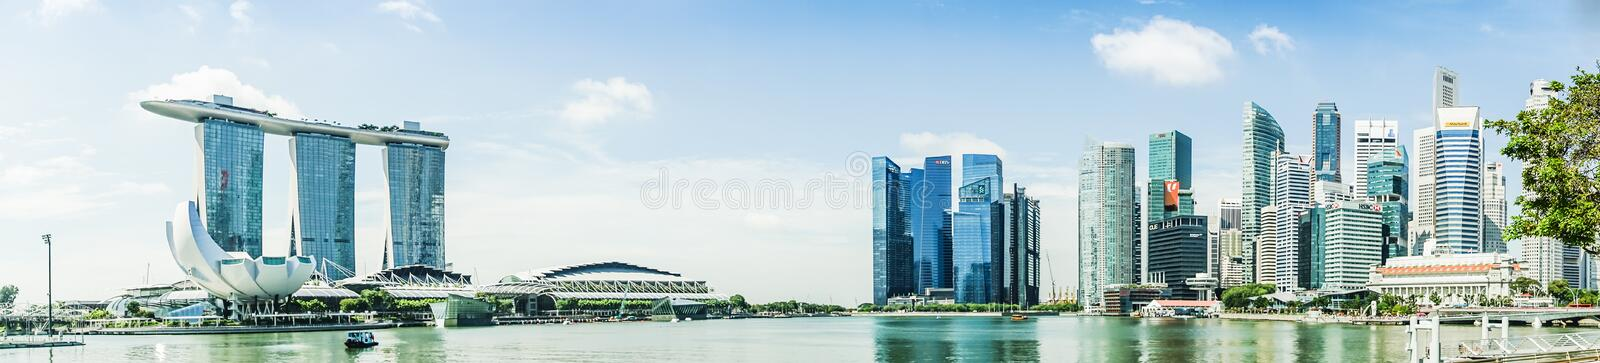 SINGAPUR - APRIL 7,2017: Panoramabild von Marina Bay Sands und von Finanzzentrum stockfotos